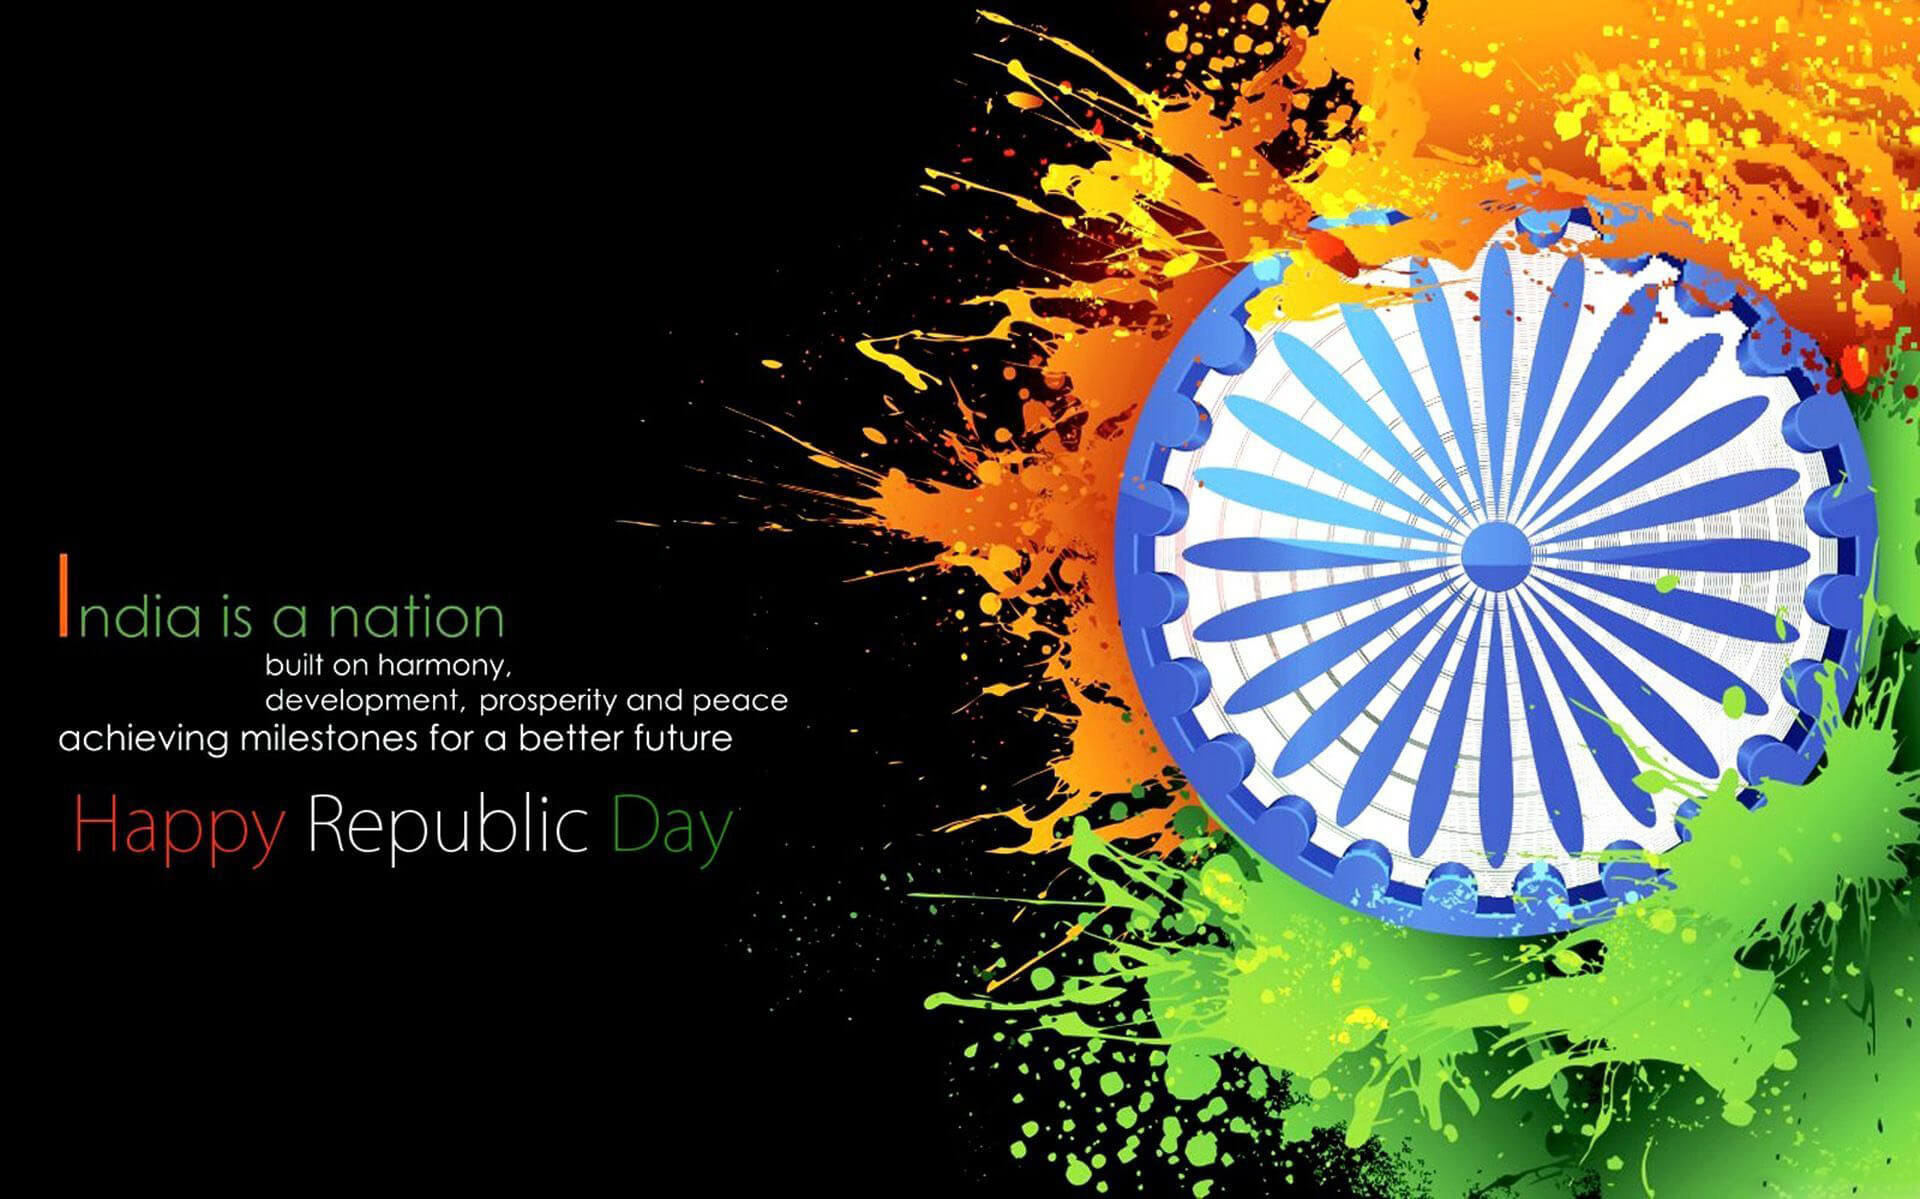 Republic Day Wallpapers Hd Wallpapers